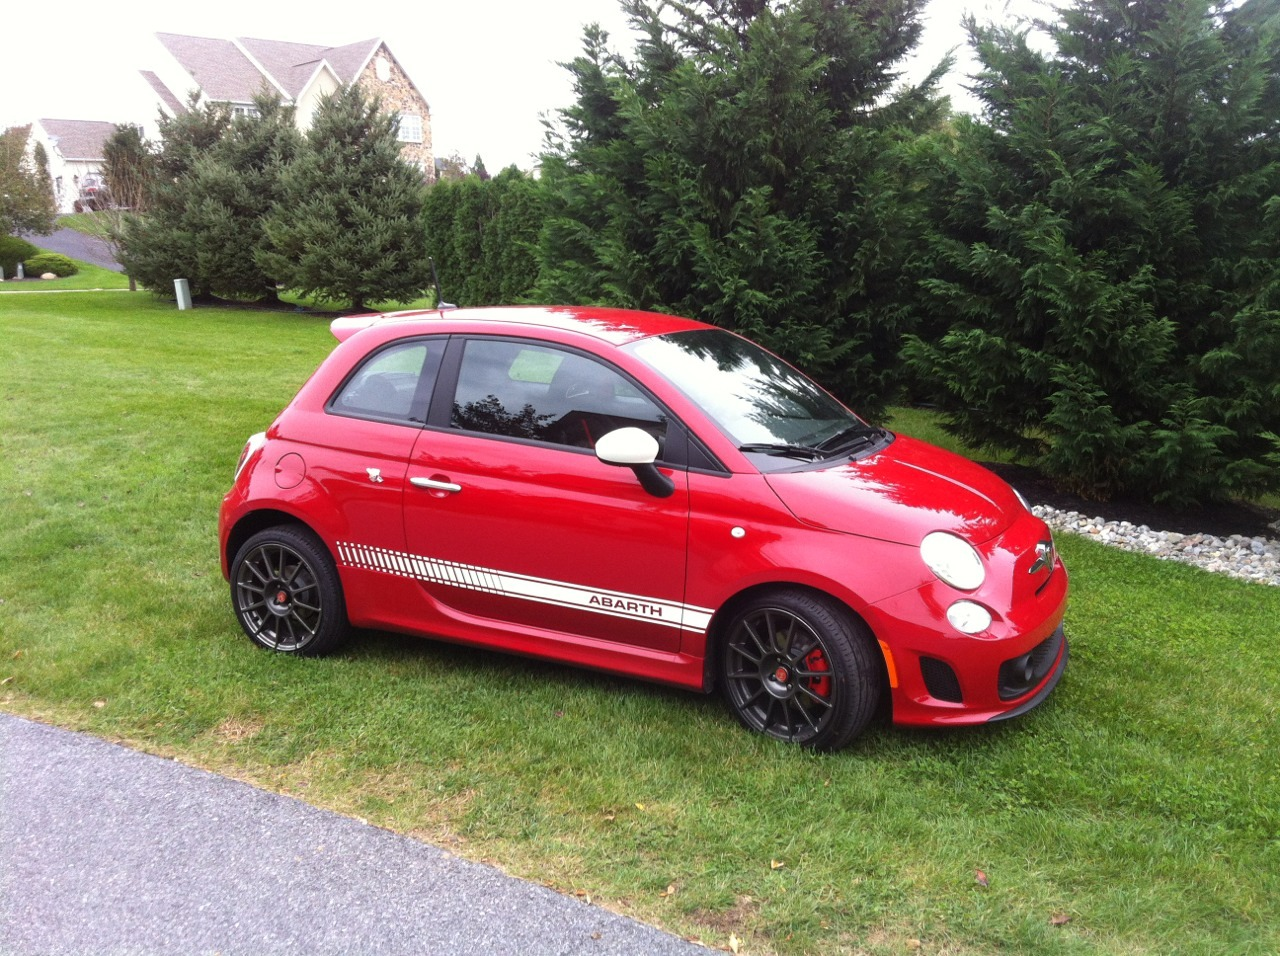 ceremonyinalonelyplace:  I've been driving my Dad's Abarth to work for the past few days and I can honestly say I've never had so much fun driving. Every time that turbo spools up and the exhaust starts to crackle I get a huge grin on my face.